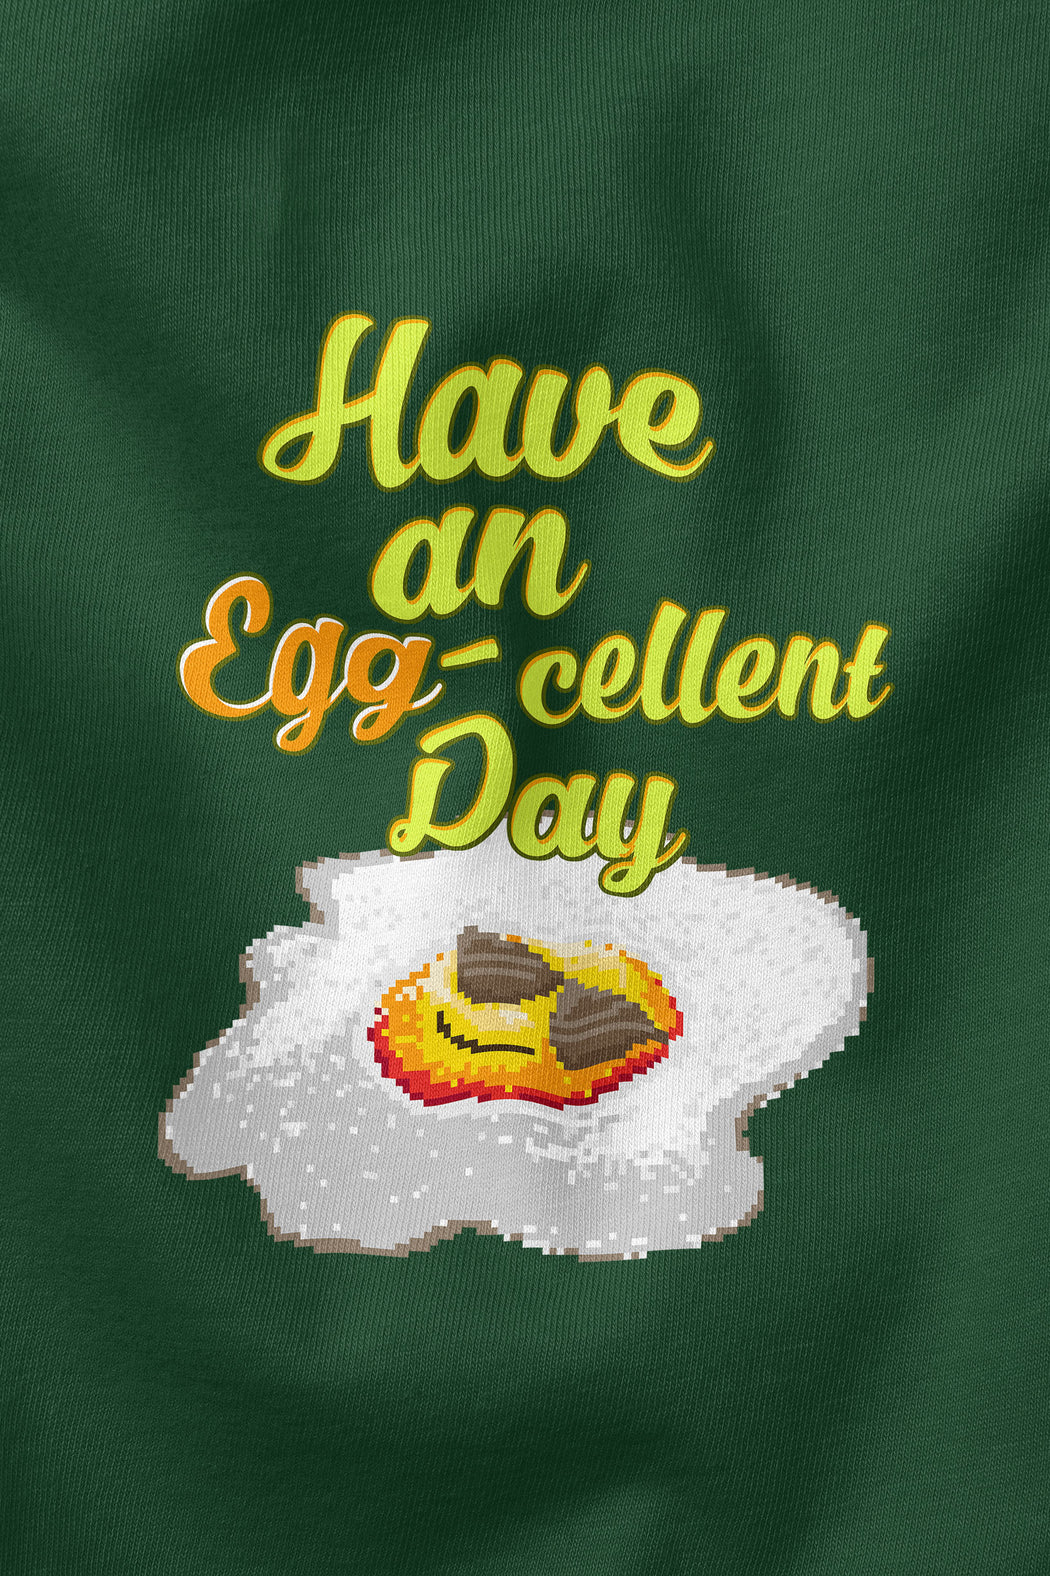 Have an Egg-cellent Day!